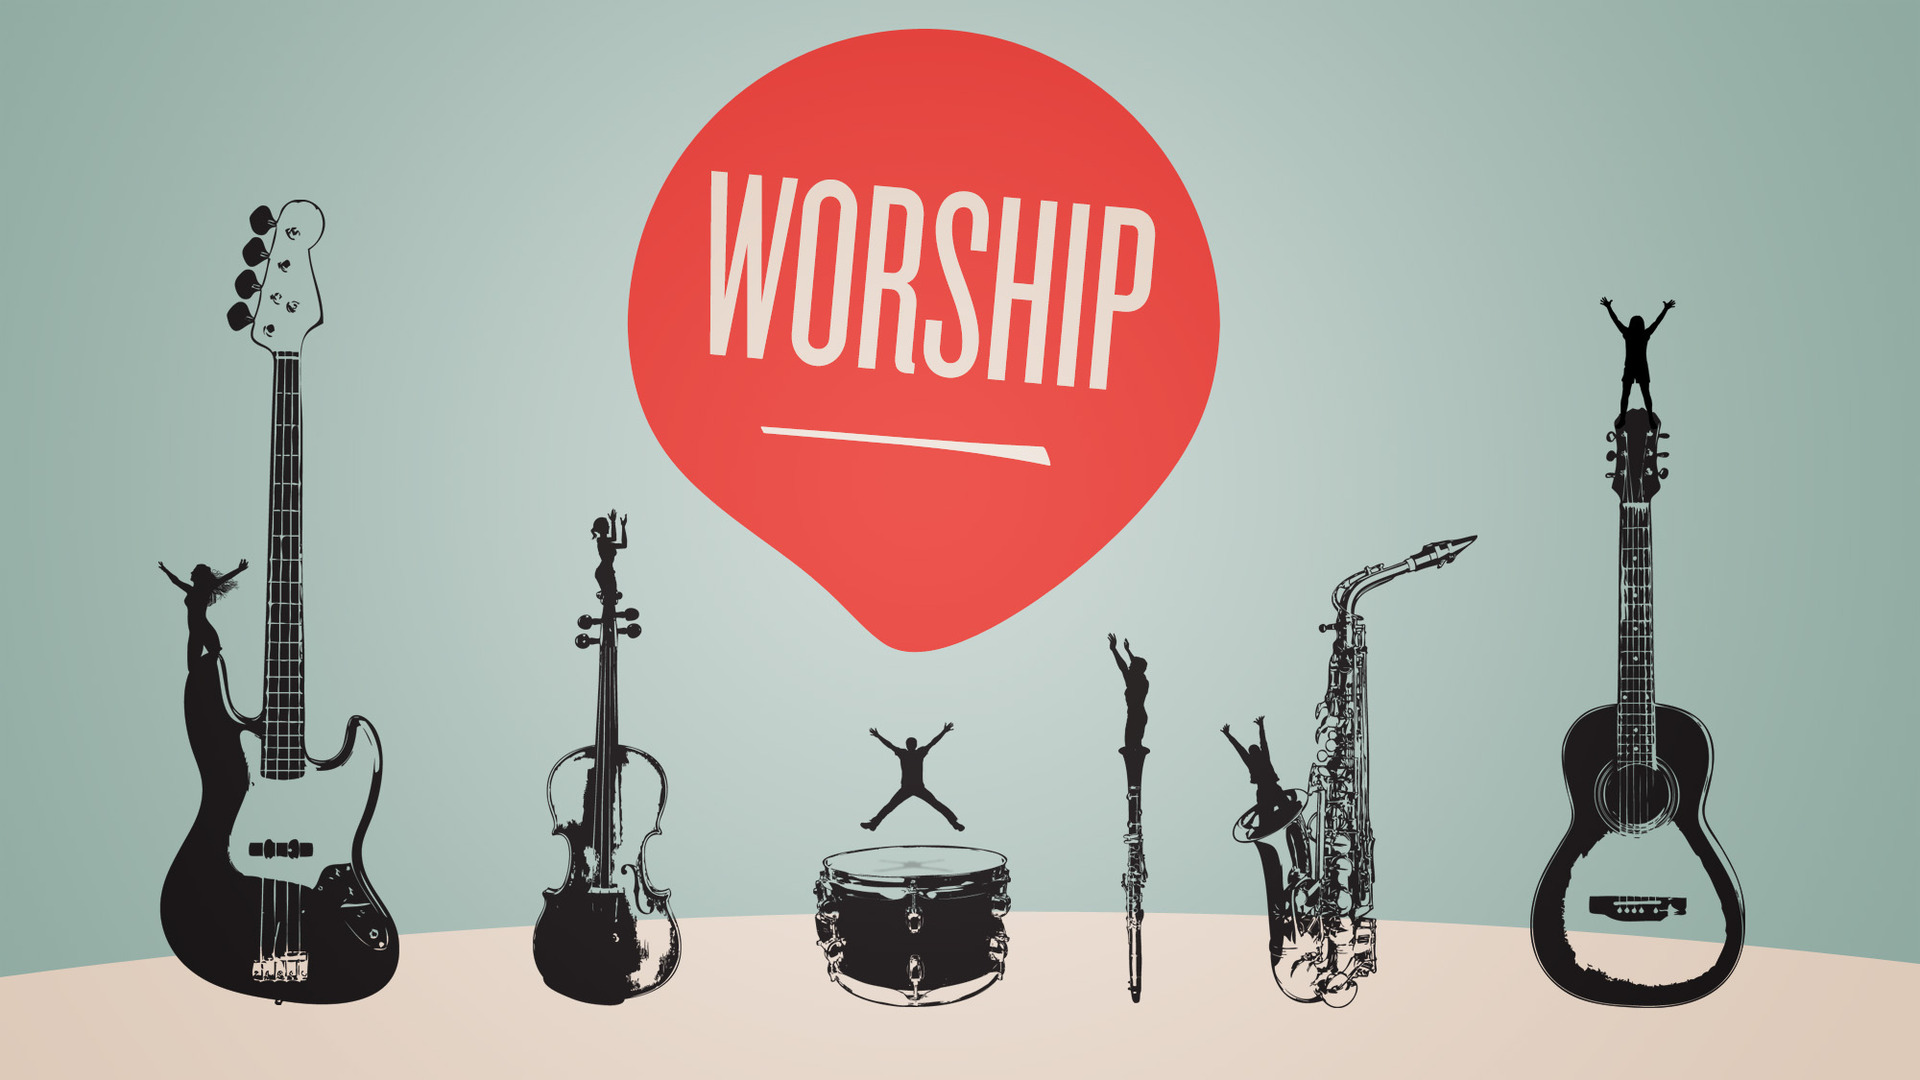 worship-title-2-Wide 16x9